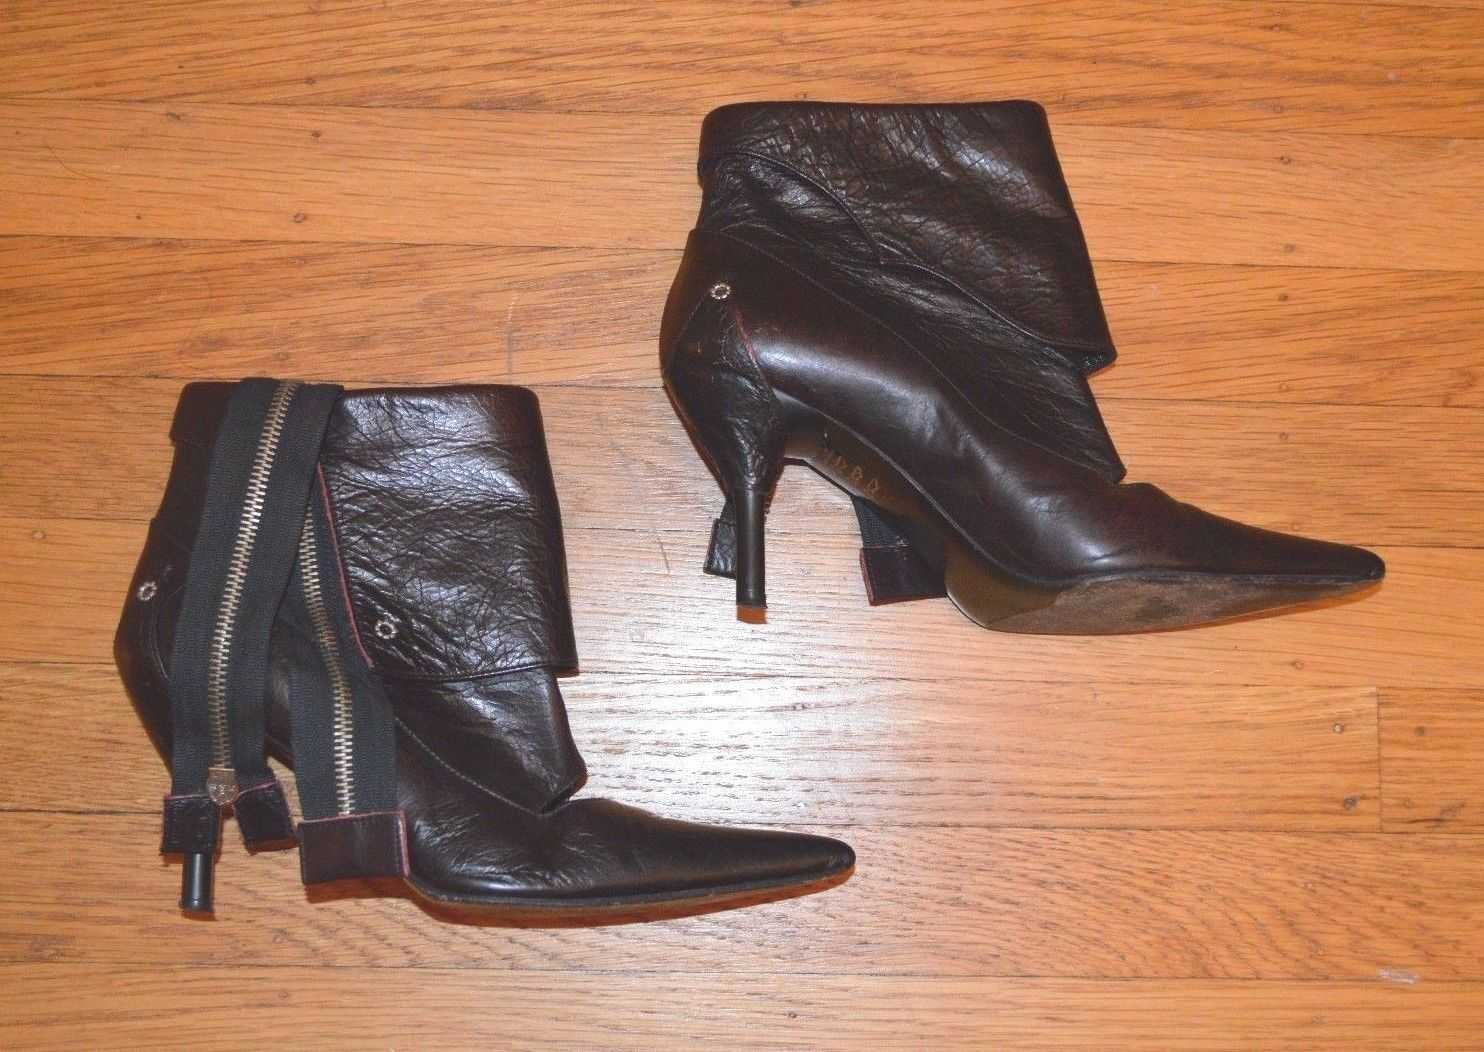 DIESEL Style Lab Women's Antiqued Leather Designer Ankle Boots (Sz 36 EU, 6 US)